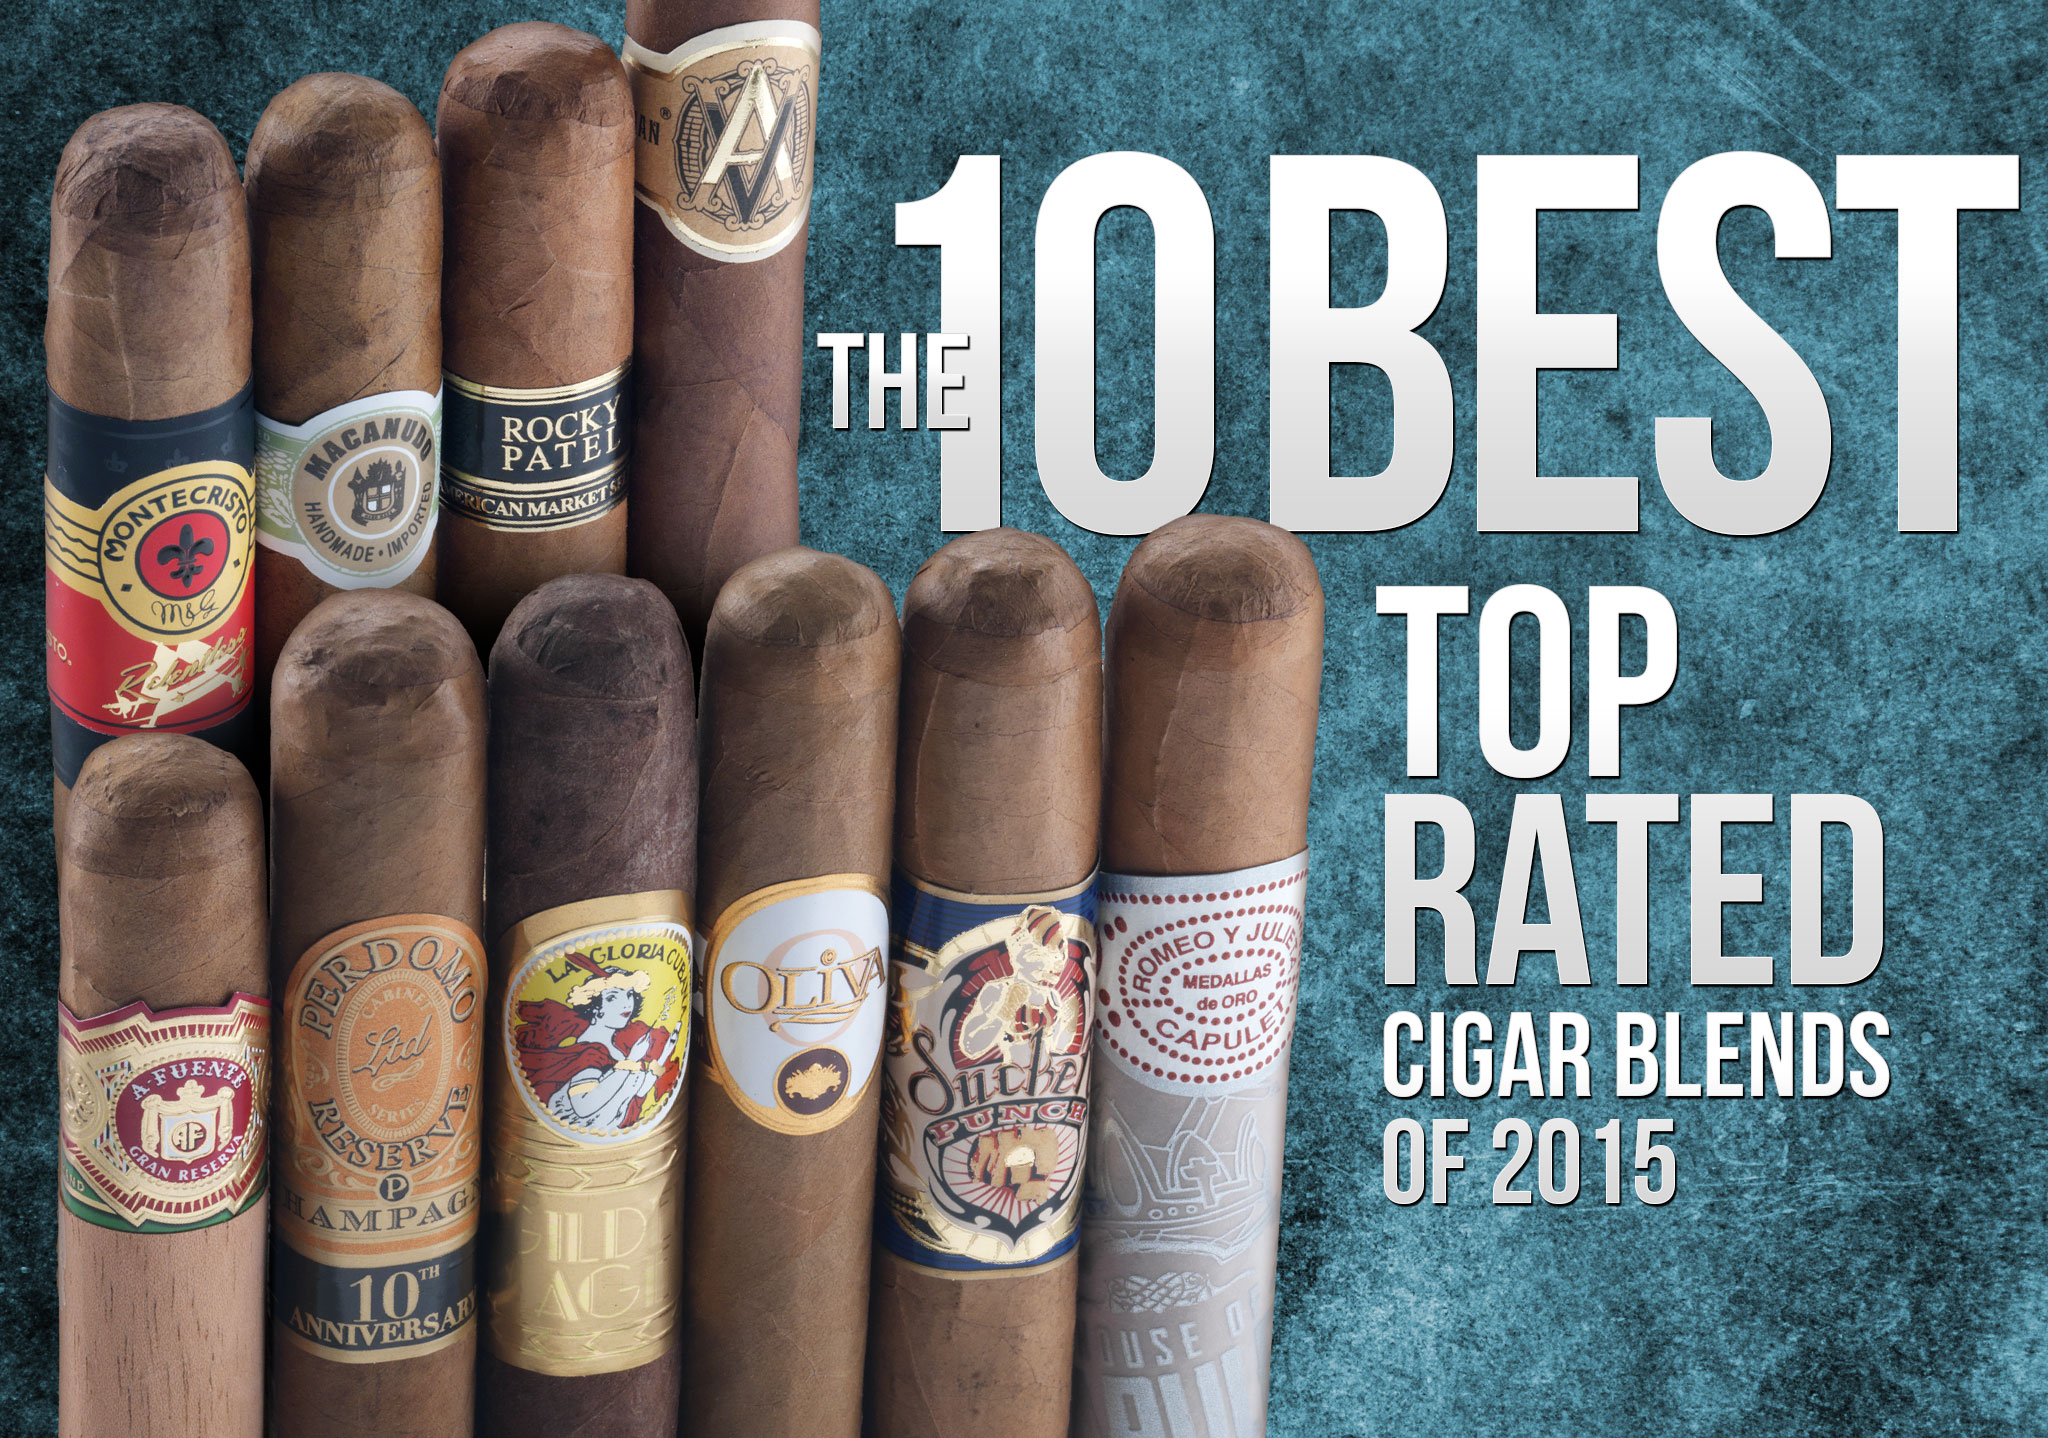 The 10 Best Top-Rated Cigar Blends of 2015